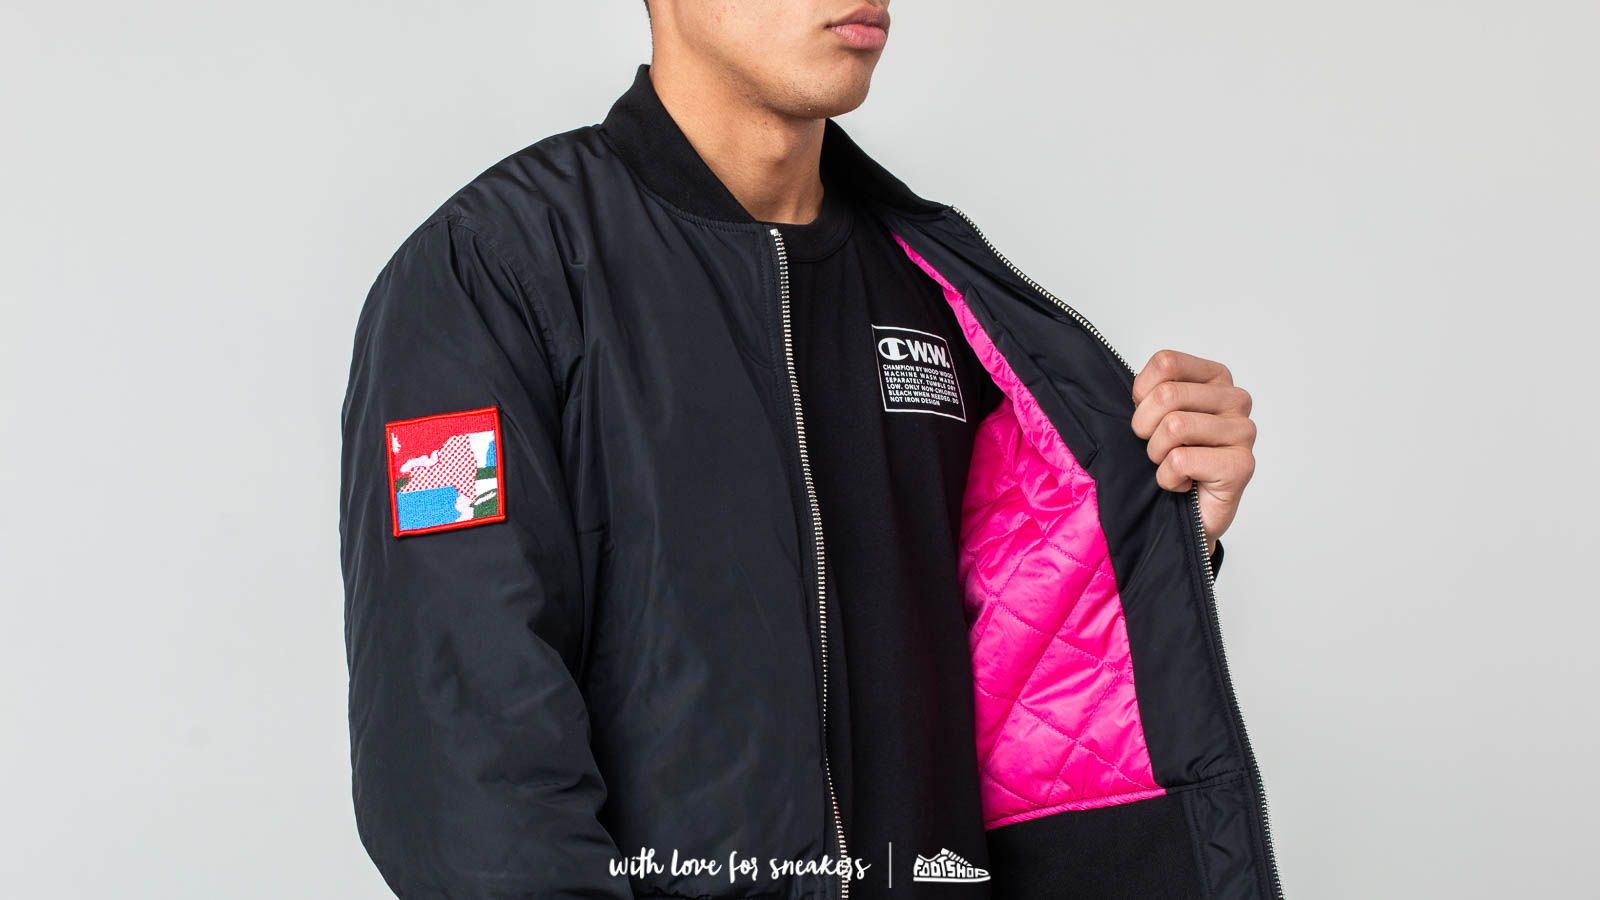 f2332fded9338 champion-x-wood-wood-danny-bomber-jacket-black.jpg